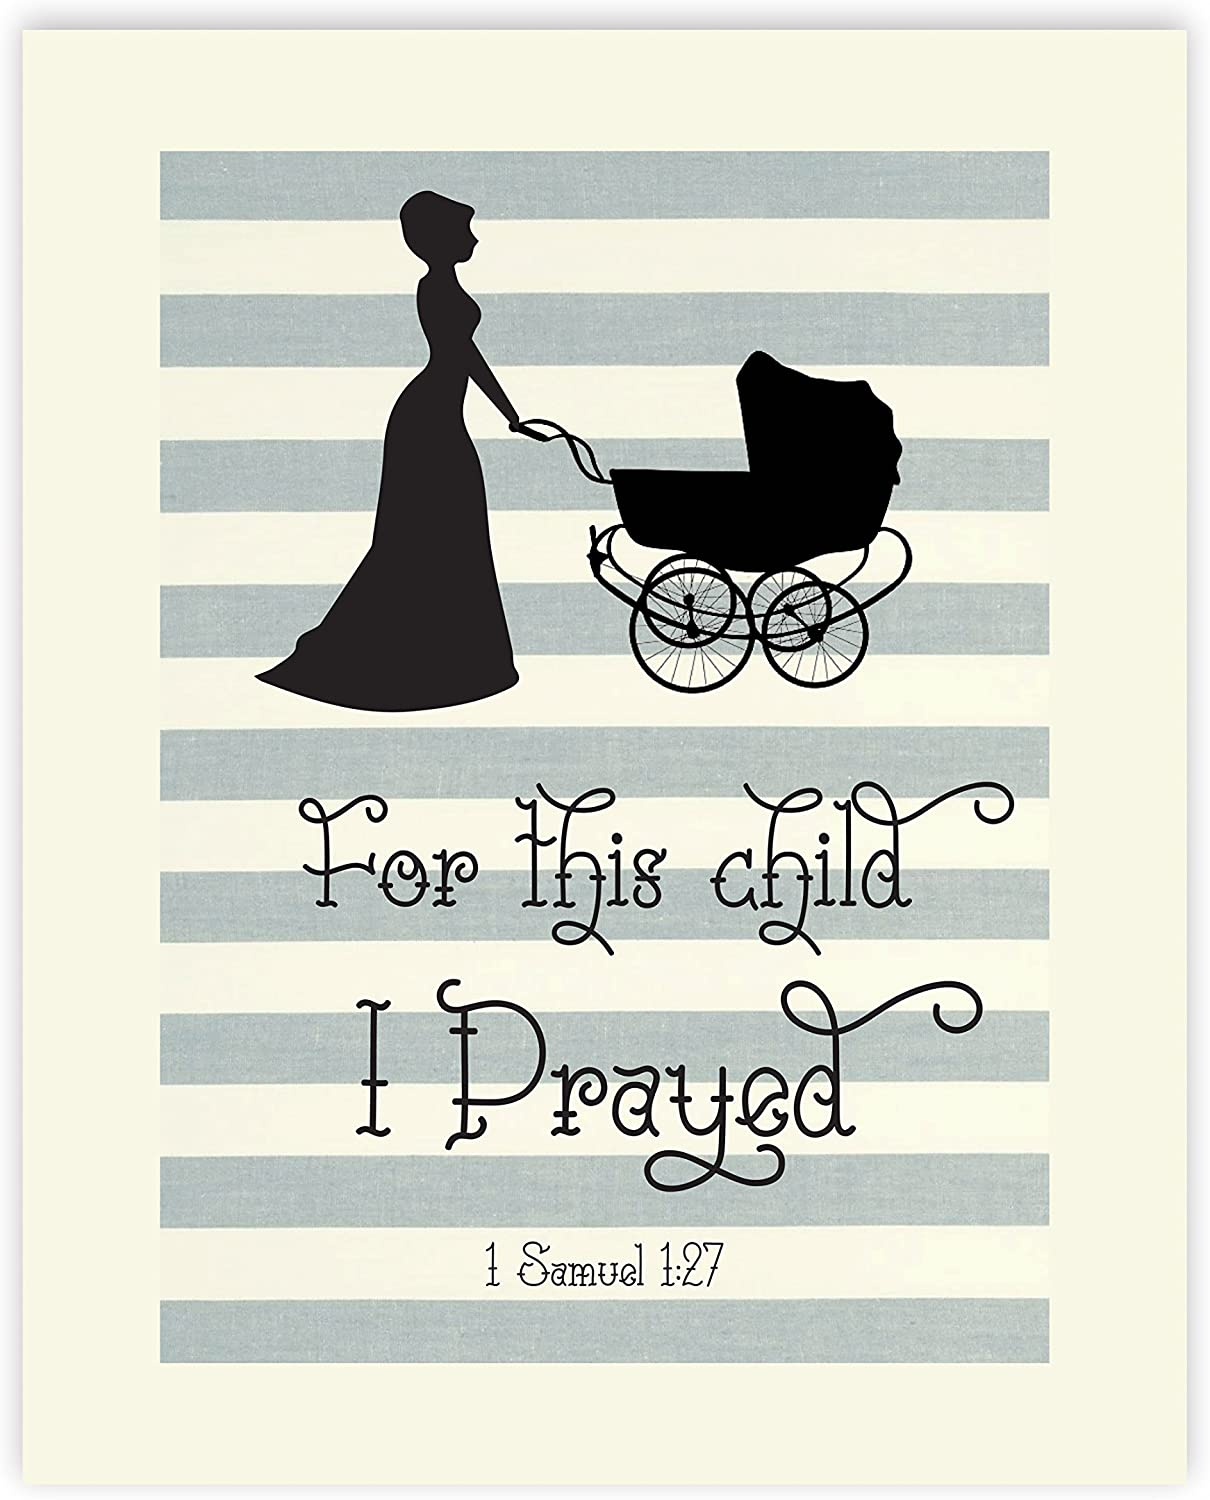 for This Child I Have Prayed 11x14, Girls Nursery Decor, Boys Nursery Decor, Nursery Wall Art, Baby Gift, Shabby Chic Nursery, Gray Nursery, Christian Wall Art, Samuel 1:27 Religious Quotes